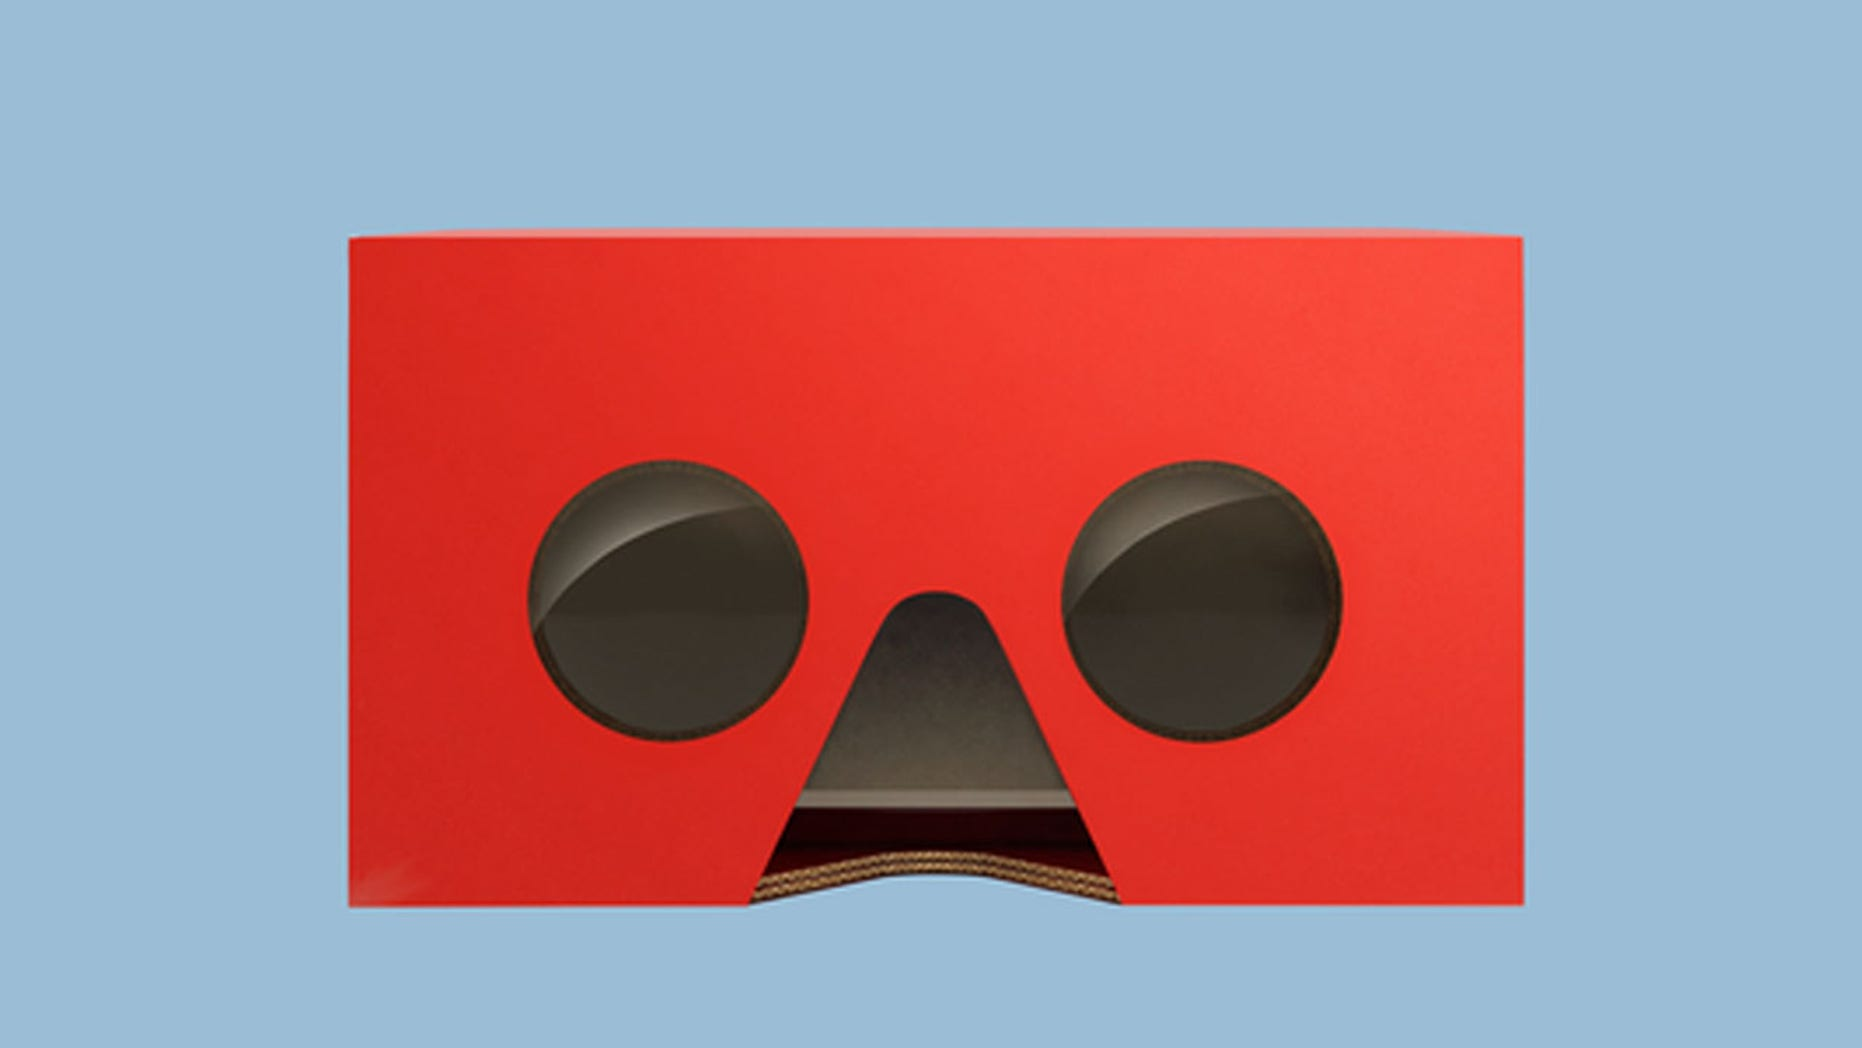 Called Happy Goggles, the virtual reality headsets will be available from March 5 and March 12. The price is about $4.10.